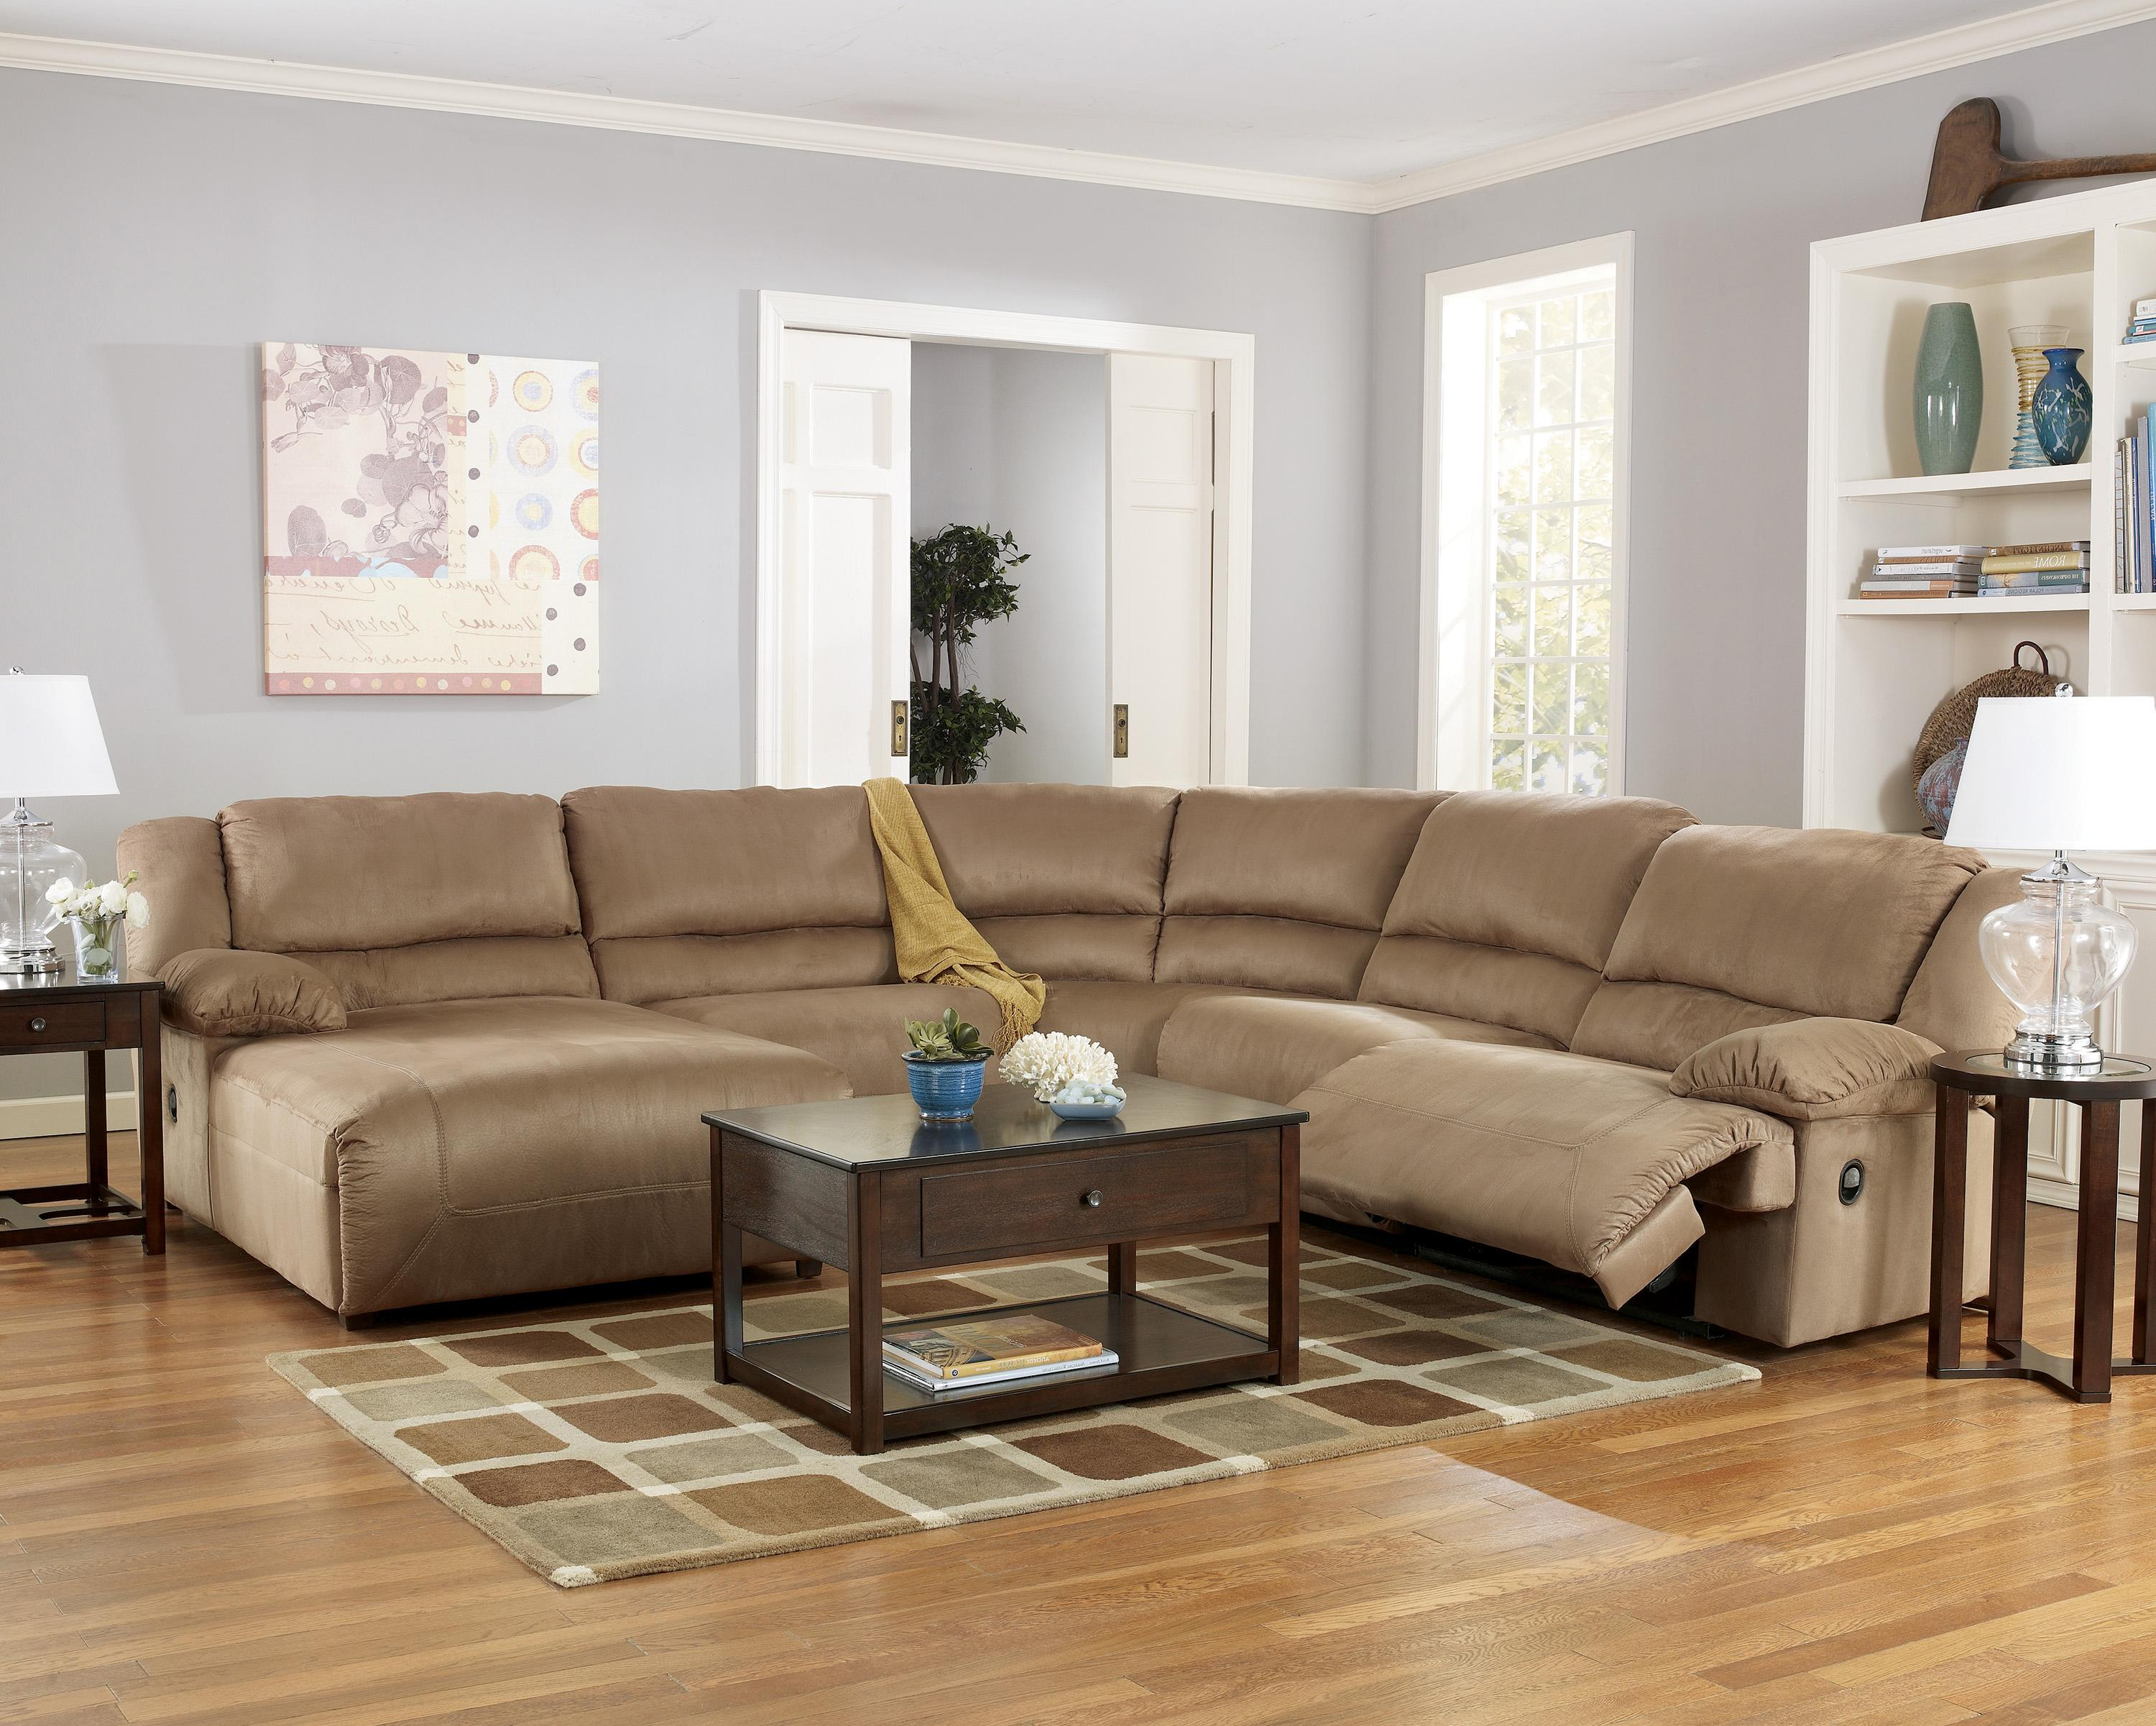 Signature Design by Ashley Hogan - Mocha 5 Piece Motion Sectional with Chaise - Item Number: 5780205+46+77+19+41